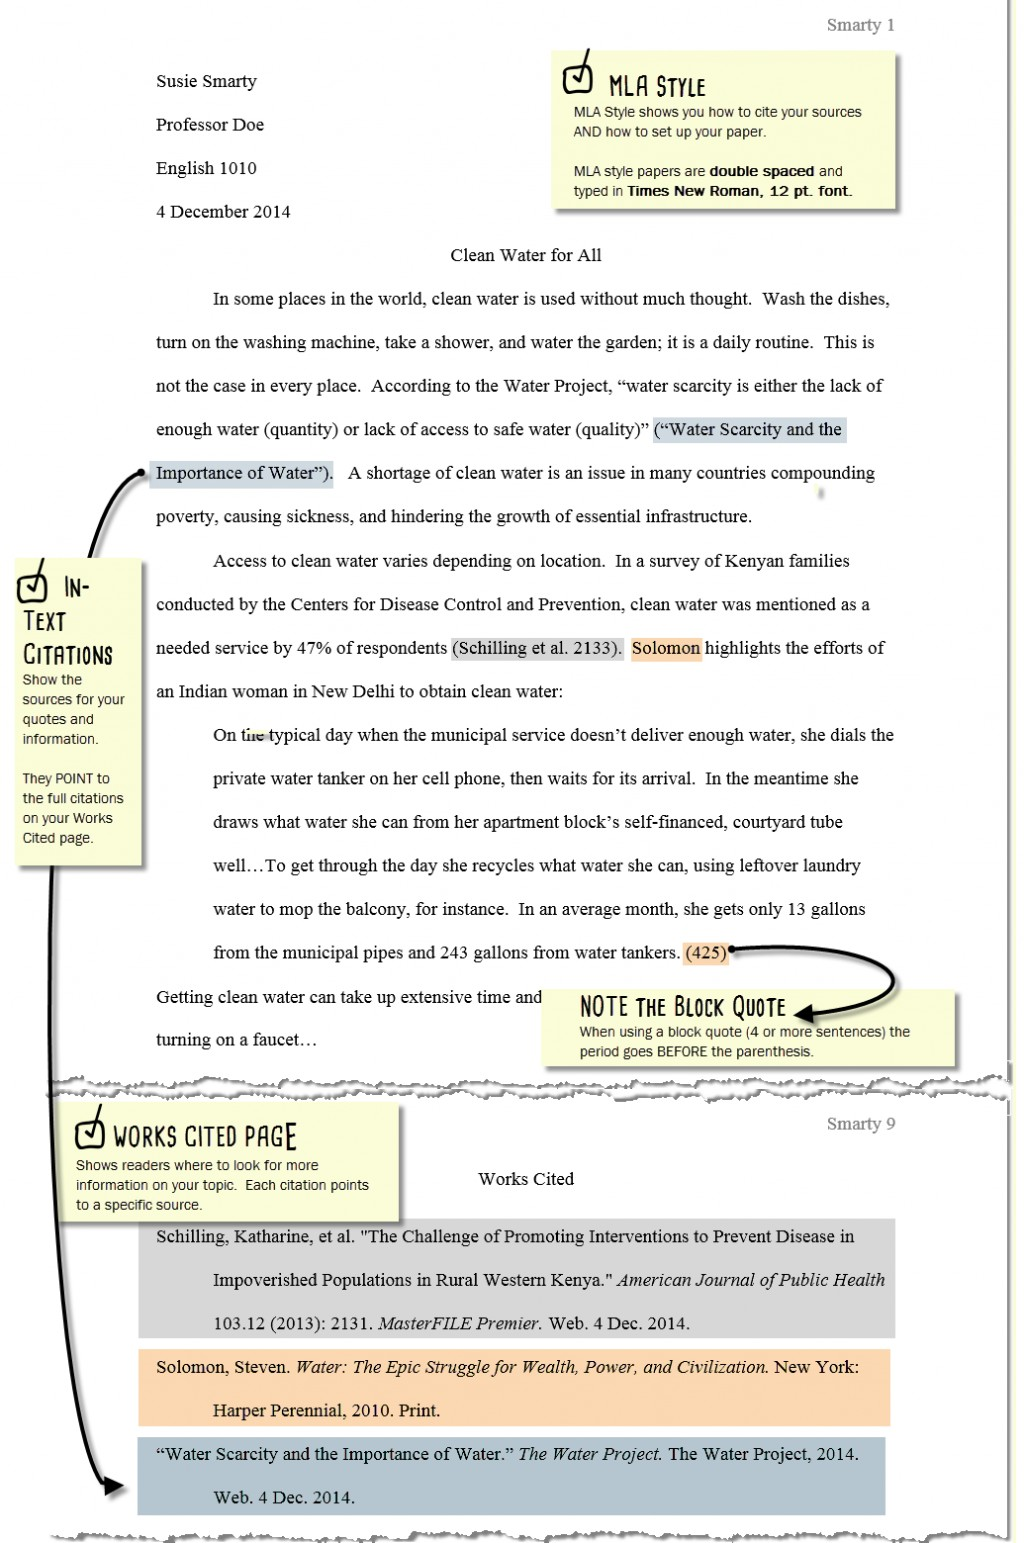 006 How To Cite Quotes In Research Paper Mla Shocking Large